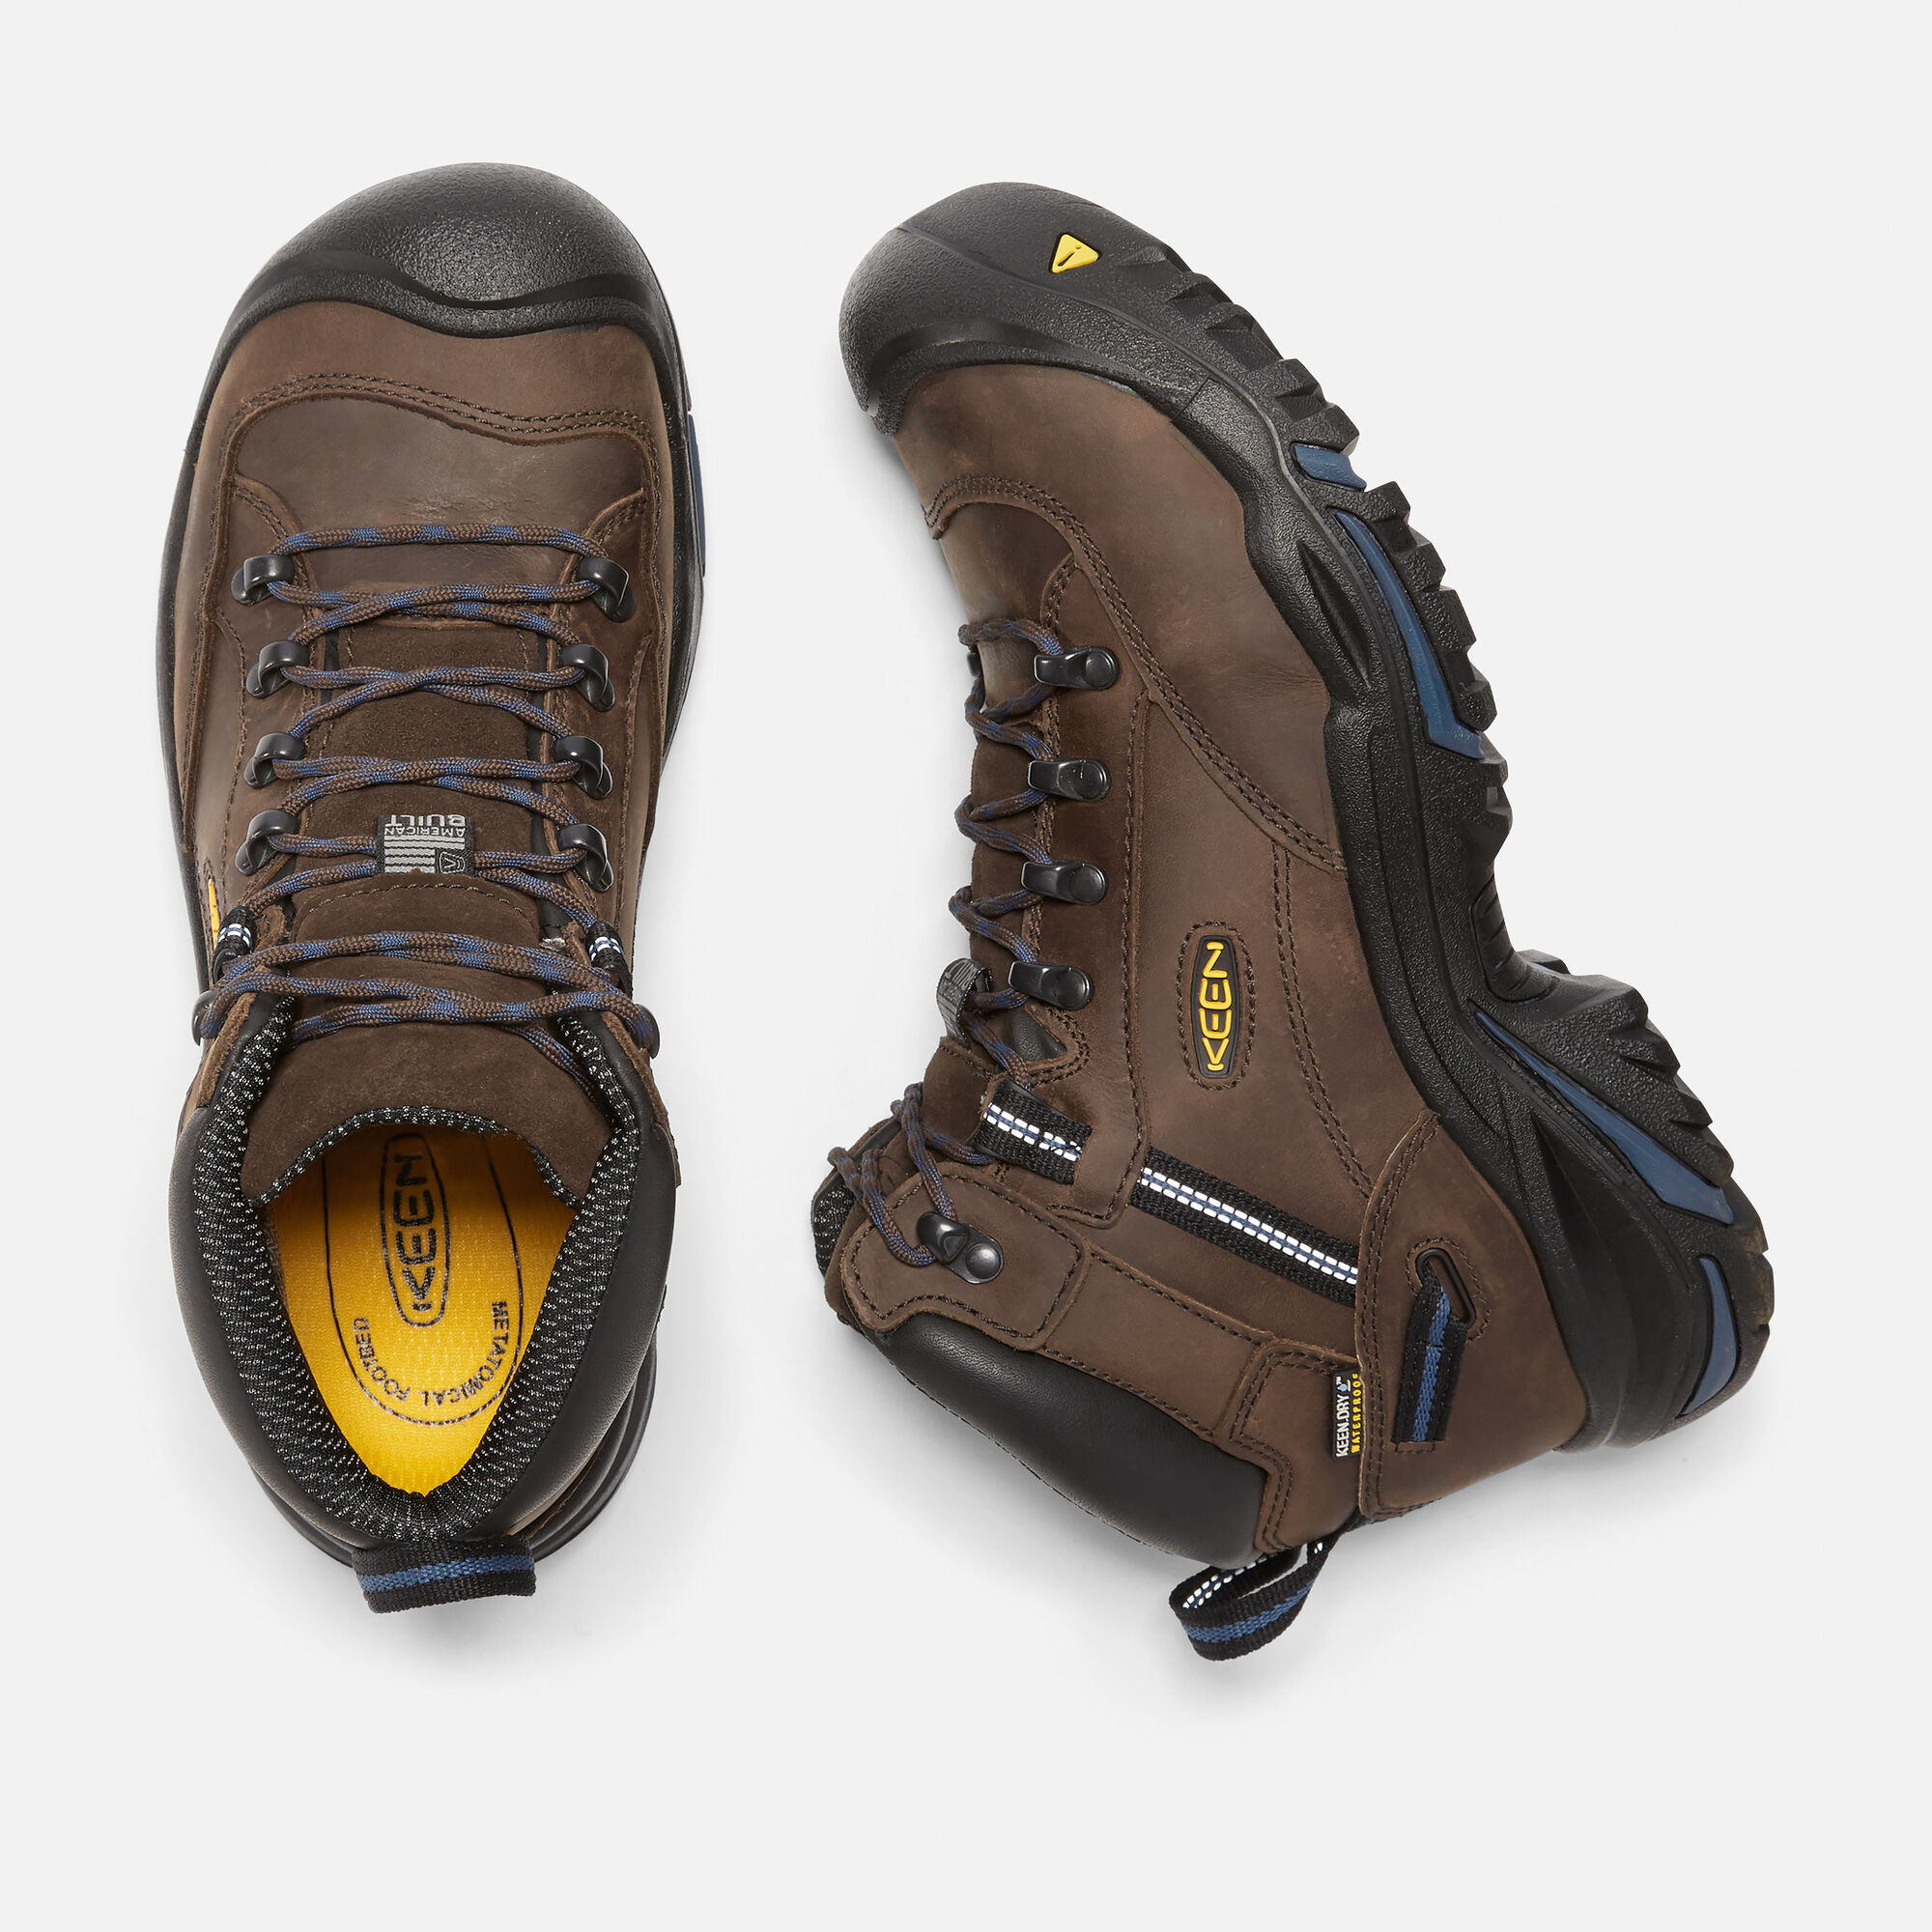 keen most m small louisville pdp toe p footwear men met slate boots s black steel comforter composite in comfortable